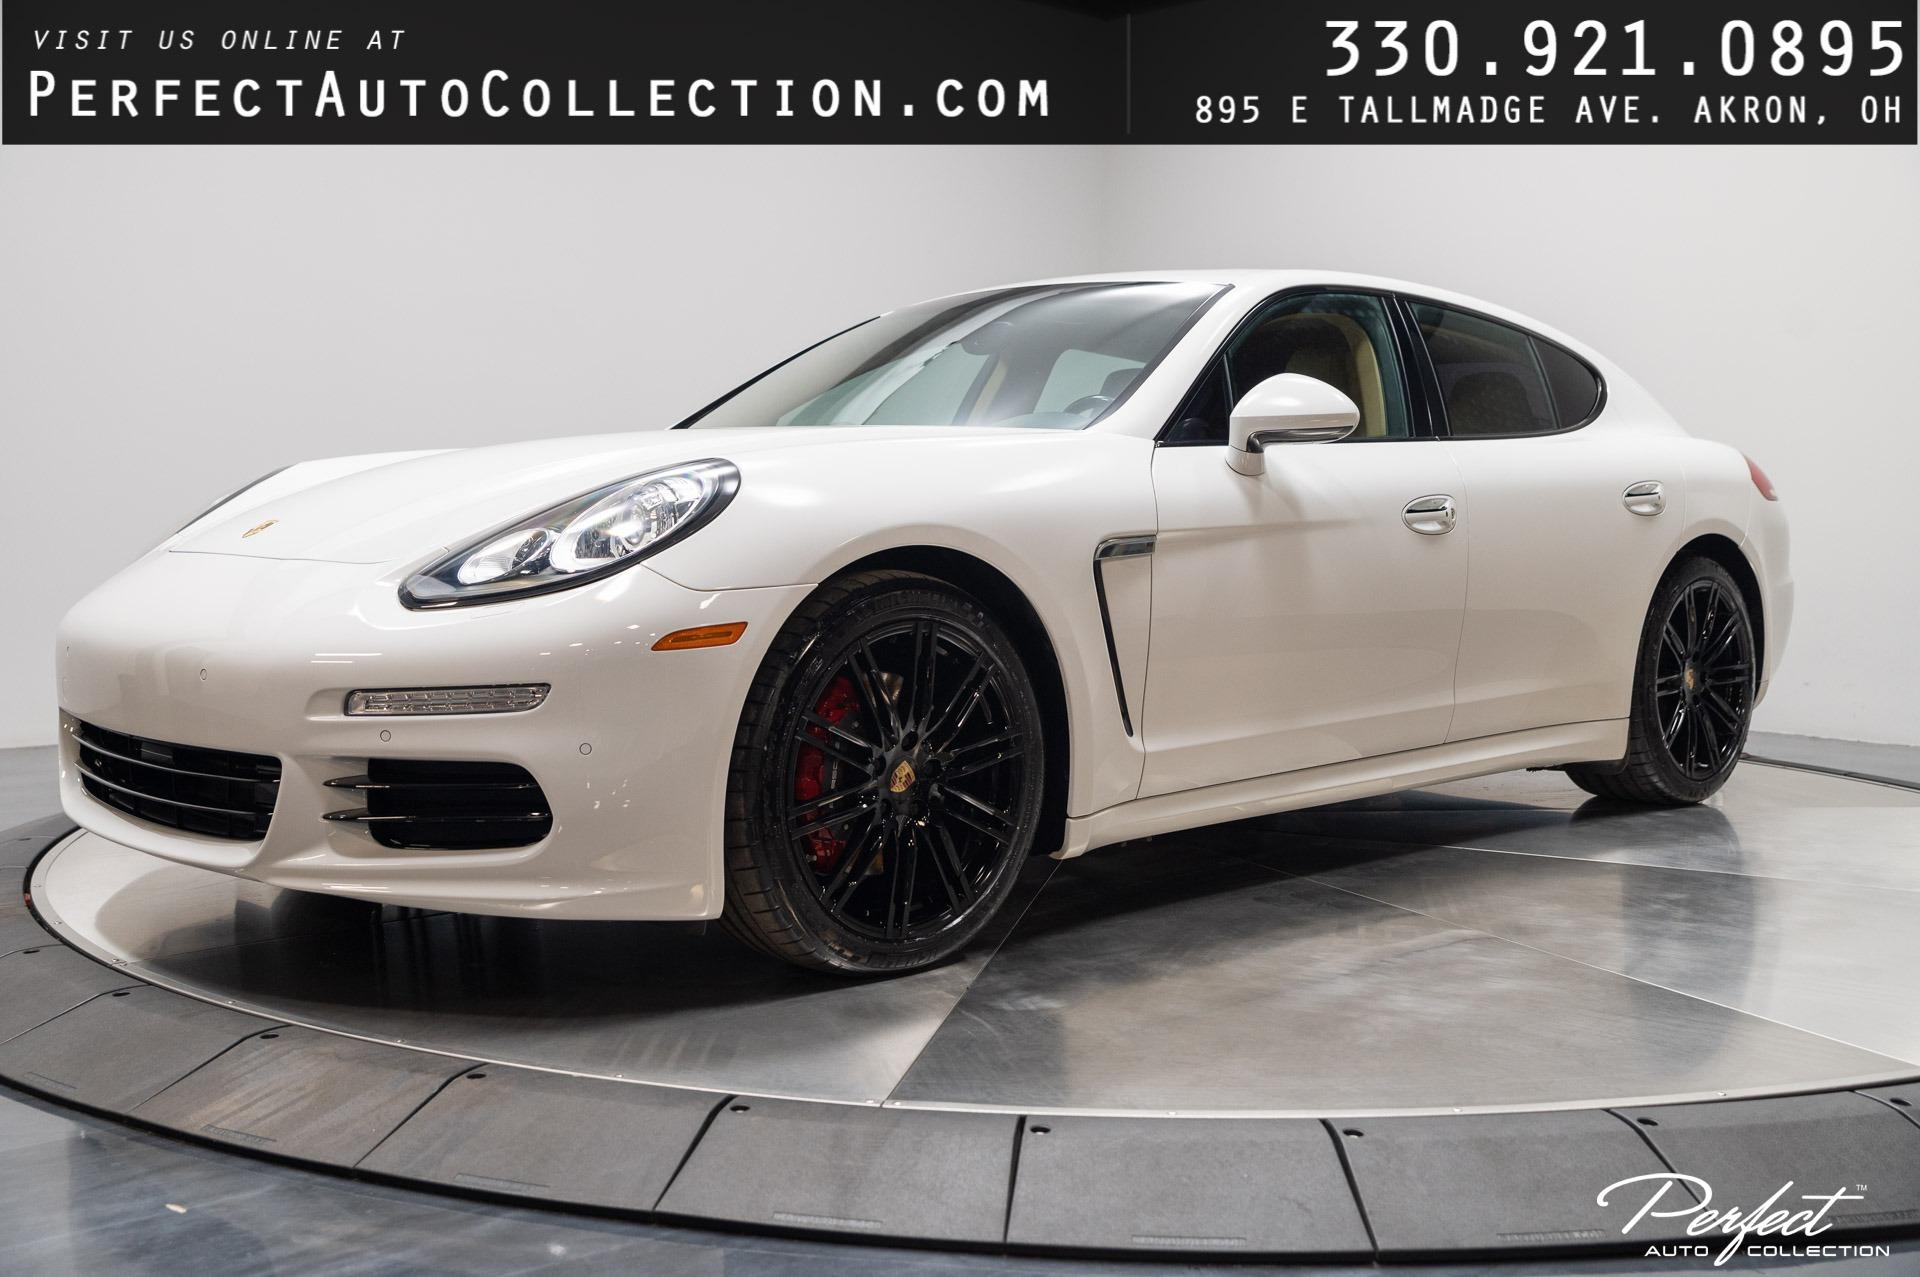 Used 2016 Porsche Panamera AWD 4 Edition for sale Sold at Perfect Auto Collection in Akron OH 44310 1